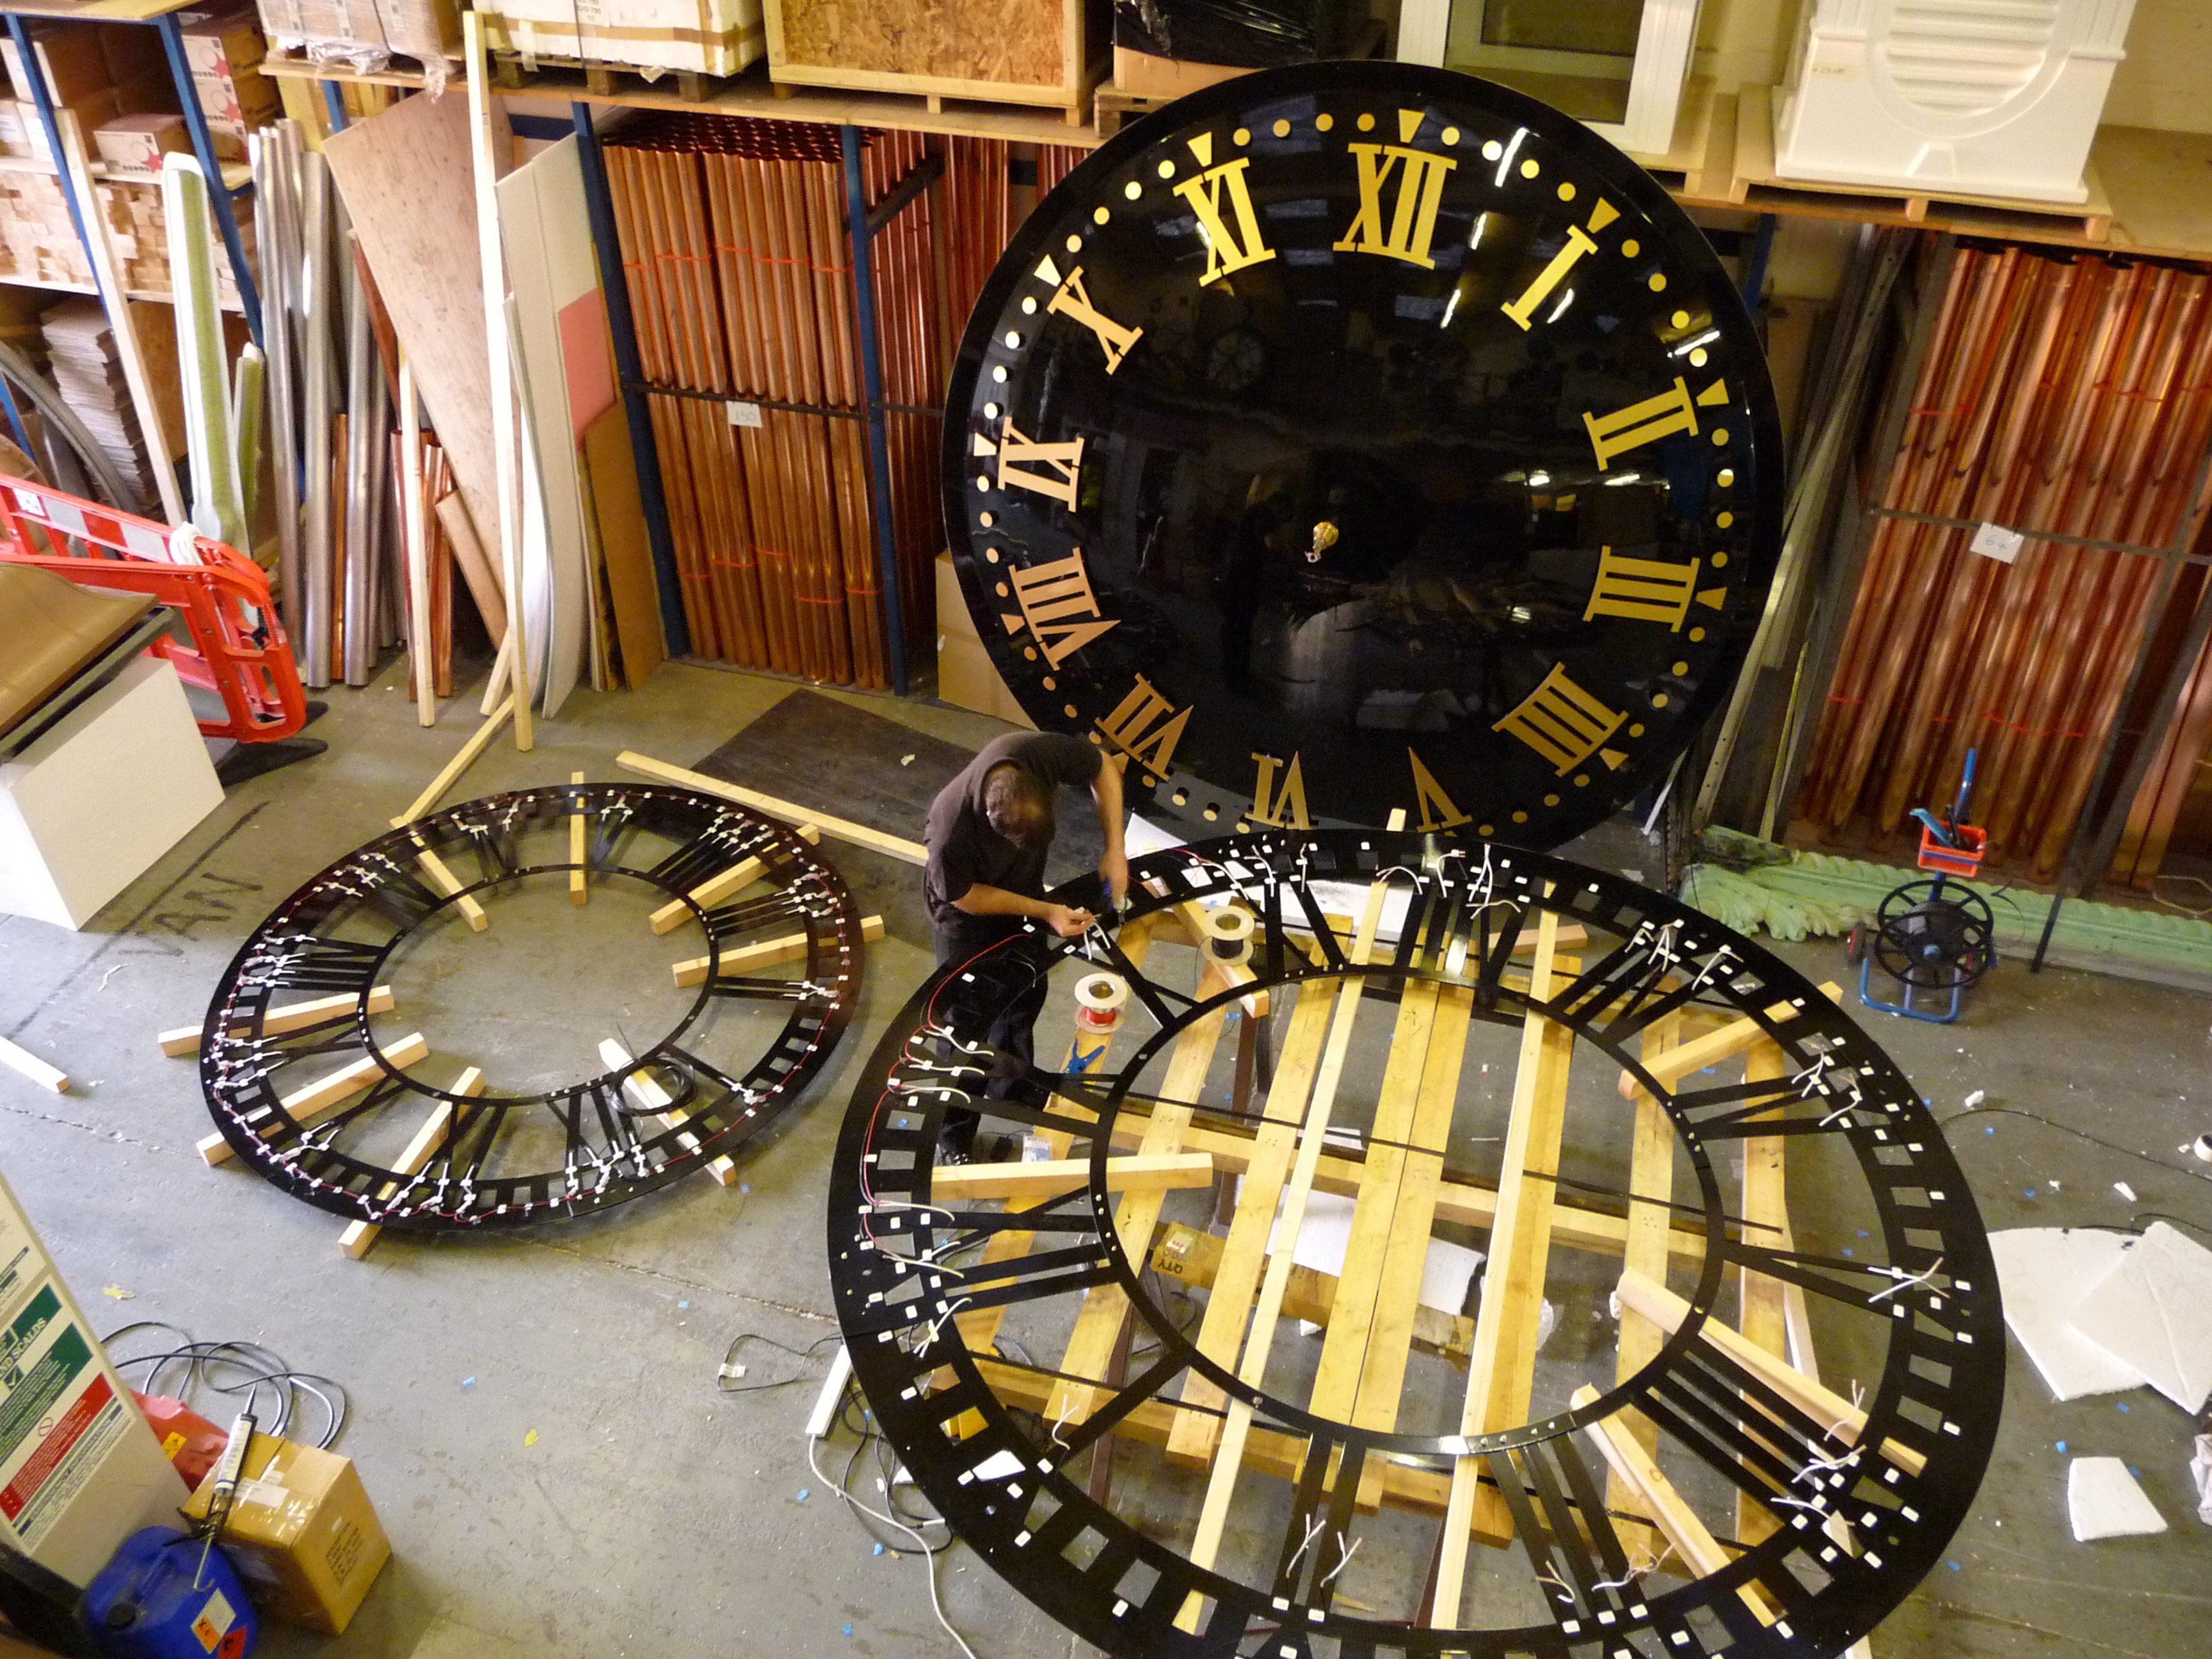 Large exterior clocks